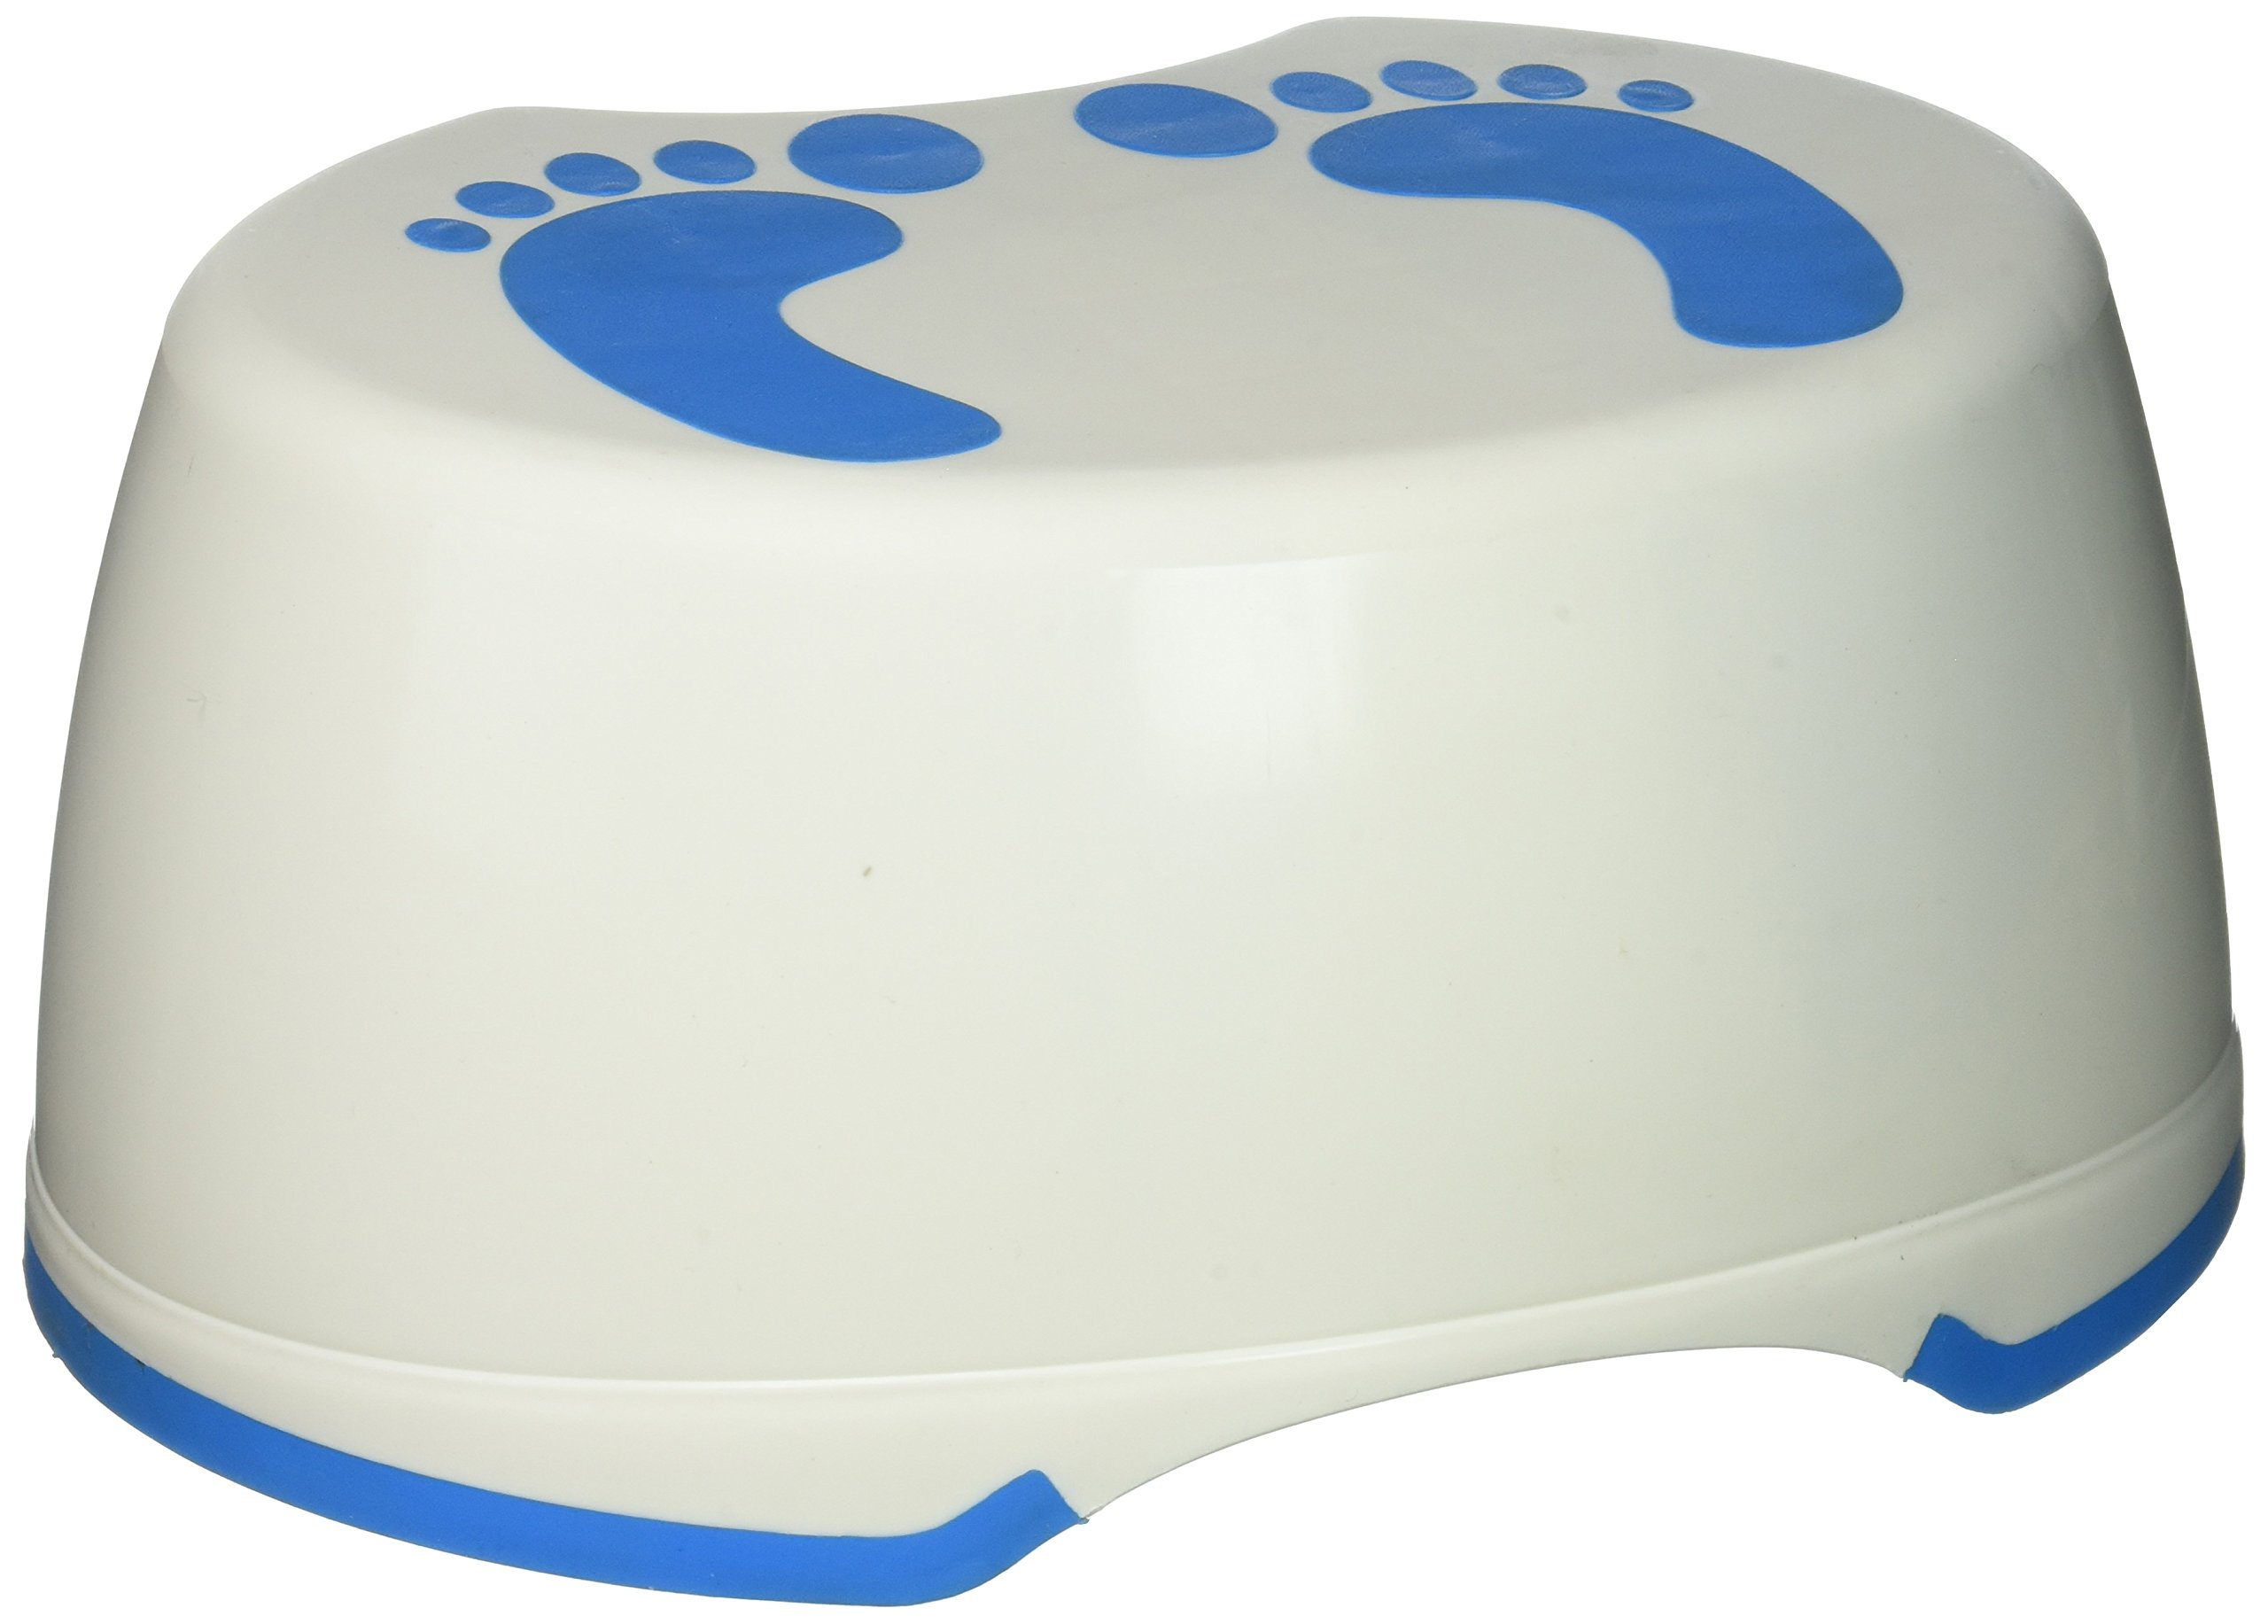 Oliadesign Child Step Stool Toddler Stepping Stool Non Slip Bathroom Potty and Toilet Training by OliaDesign